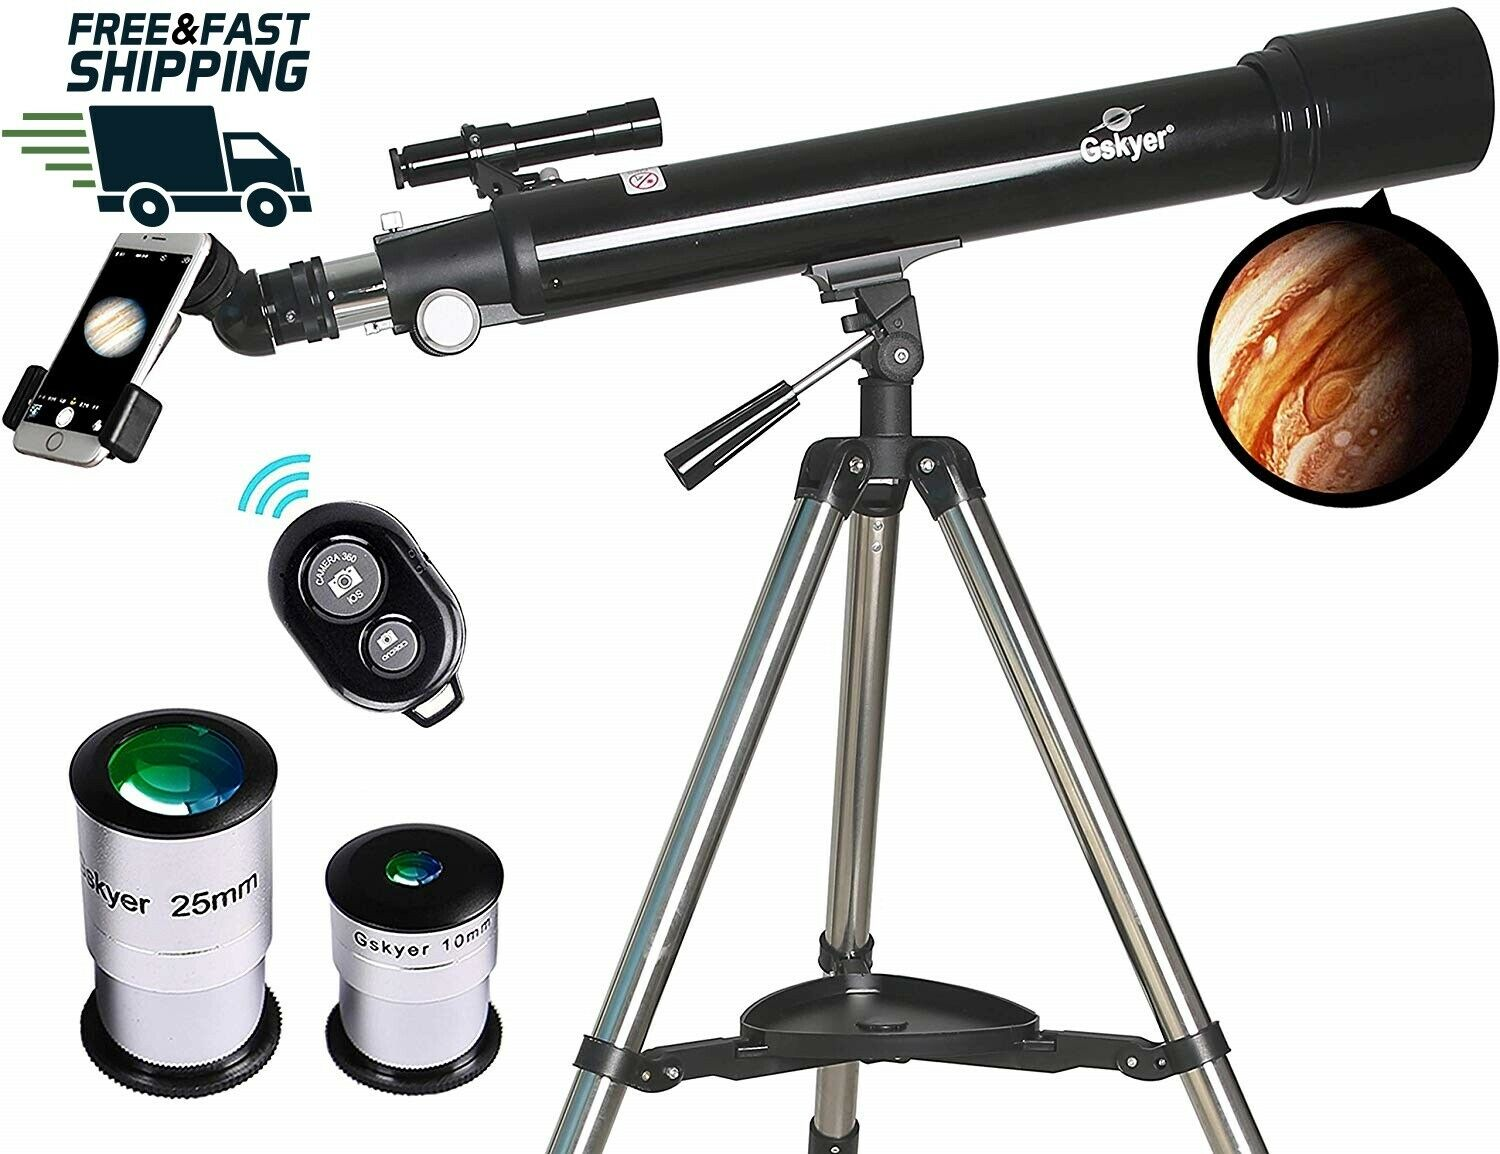 Gskyer - Astronomy Refractor Telescopes, 70mm Apeture Scope 700mm Apeture Scope